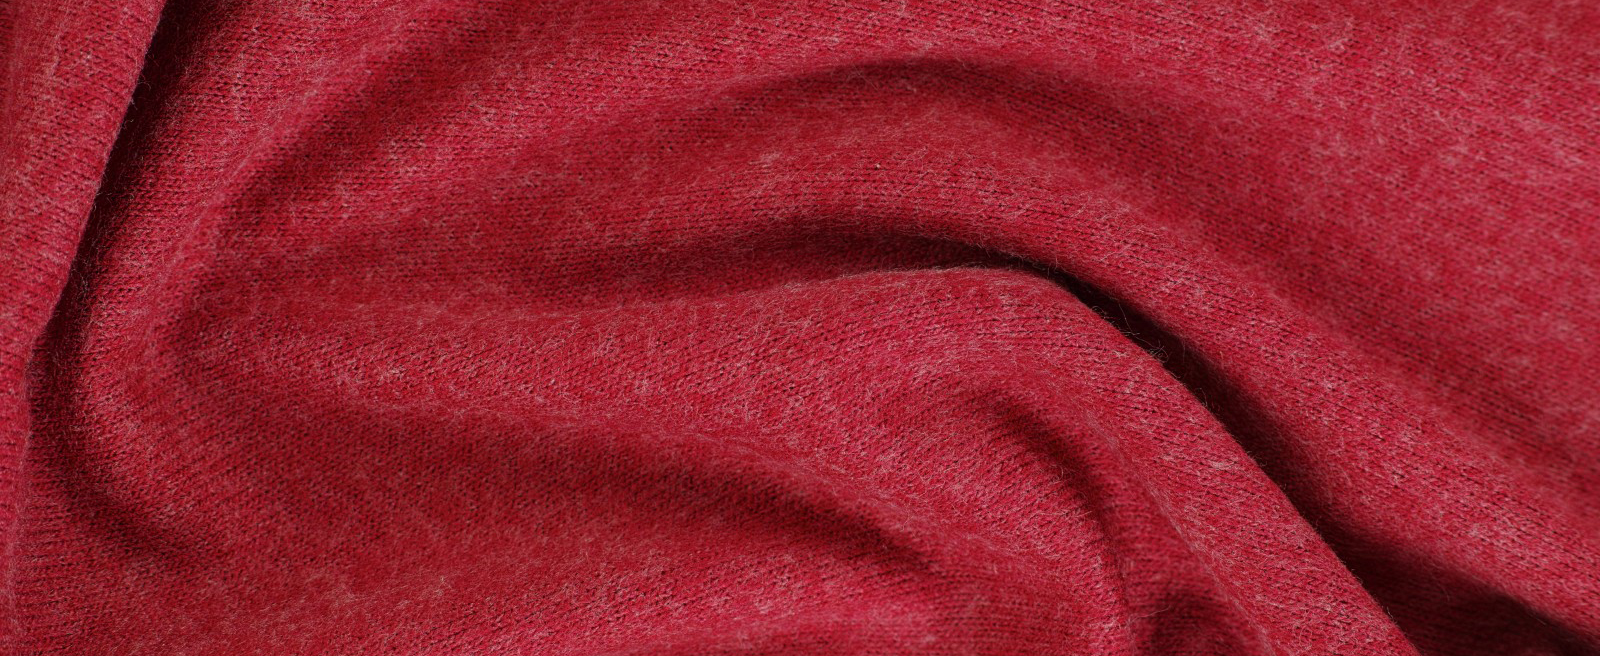 fabric_texture_surface-118747.jpg!d